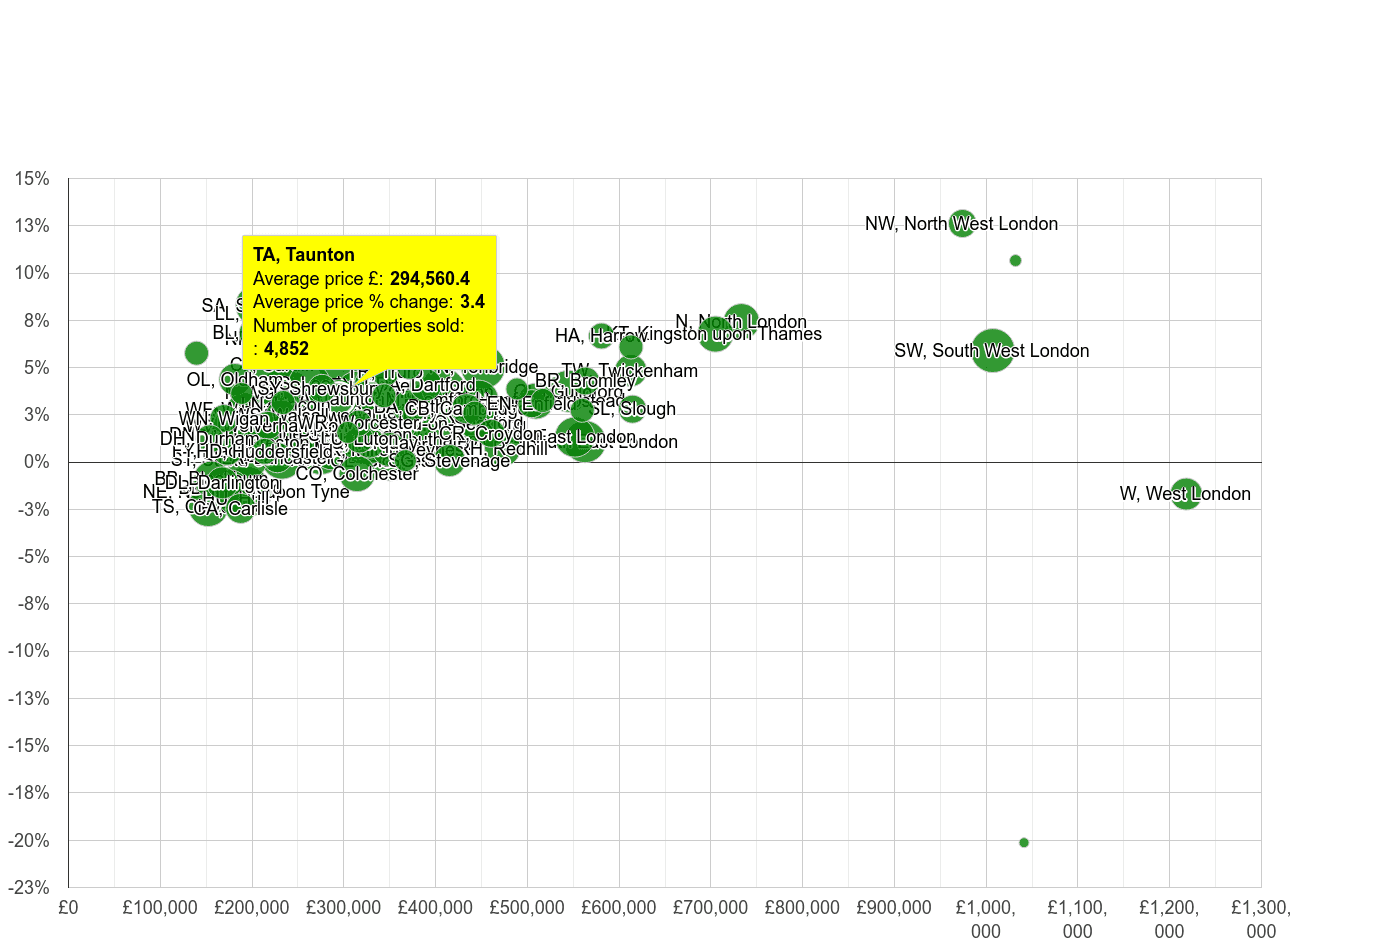 Taunton house prices compared to other areas